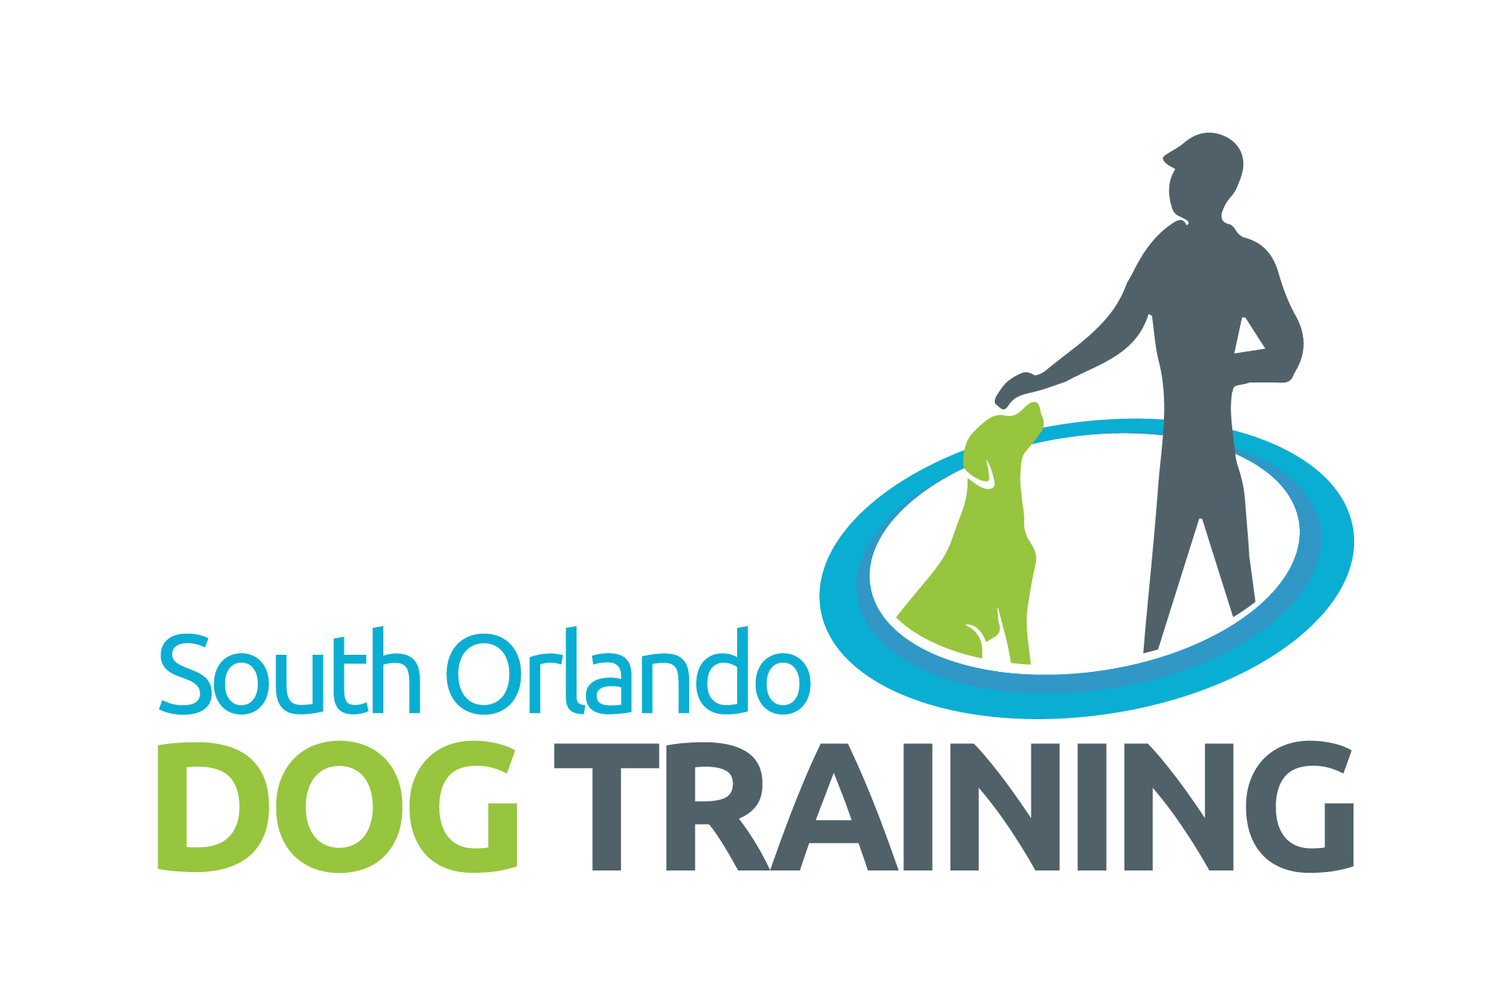 South Orlando Dog Training